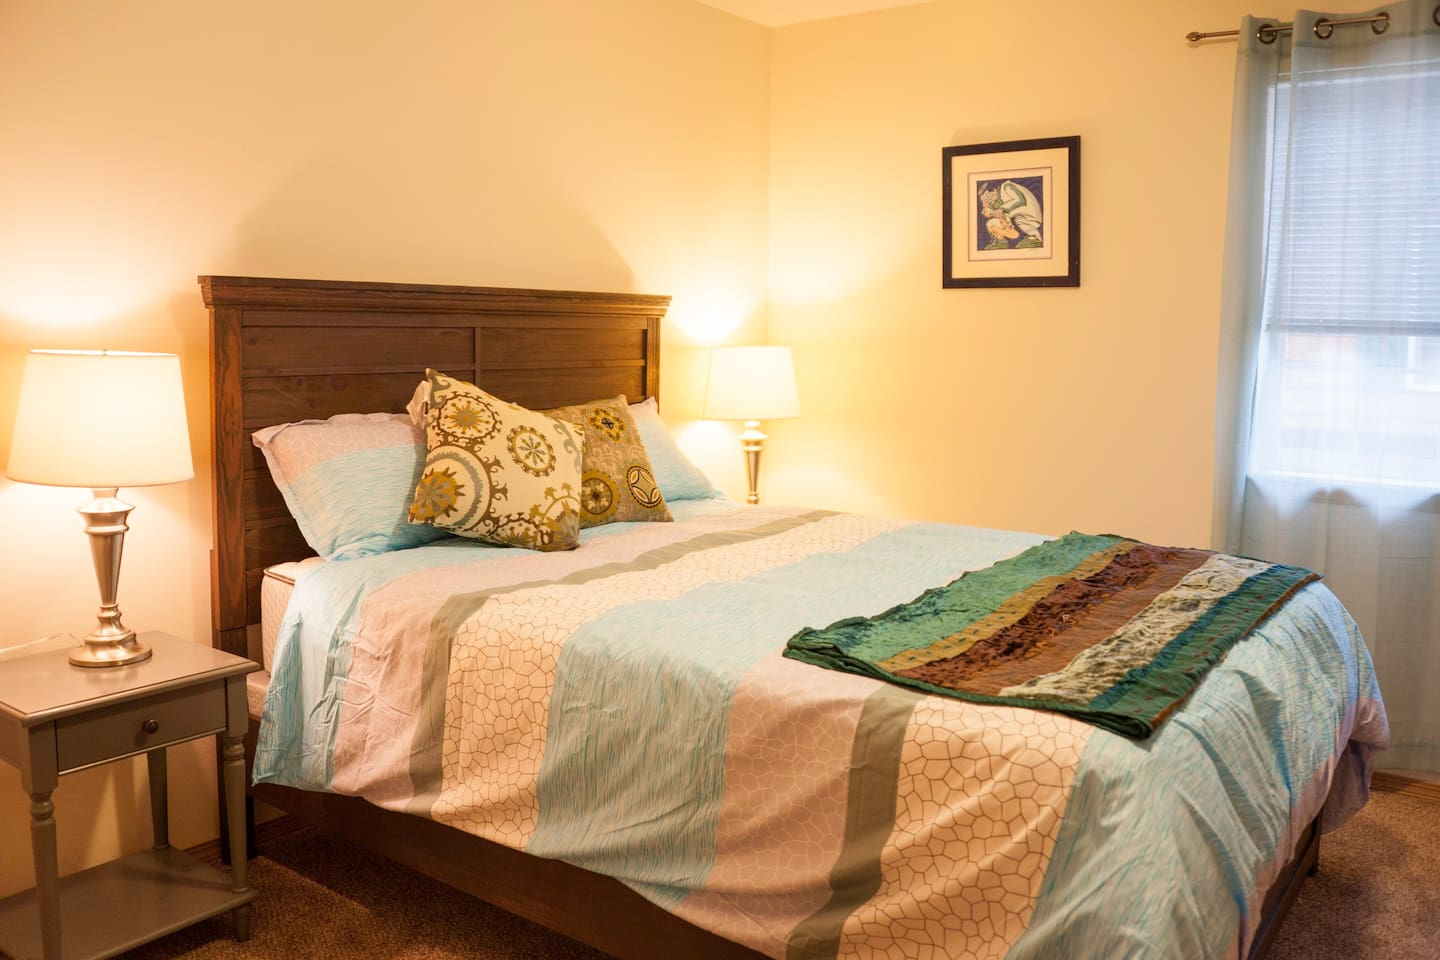 Bedroom 1 with queen size bed. Extra fold out sleeping pad available in the closet.